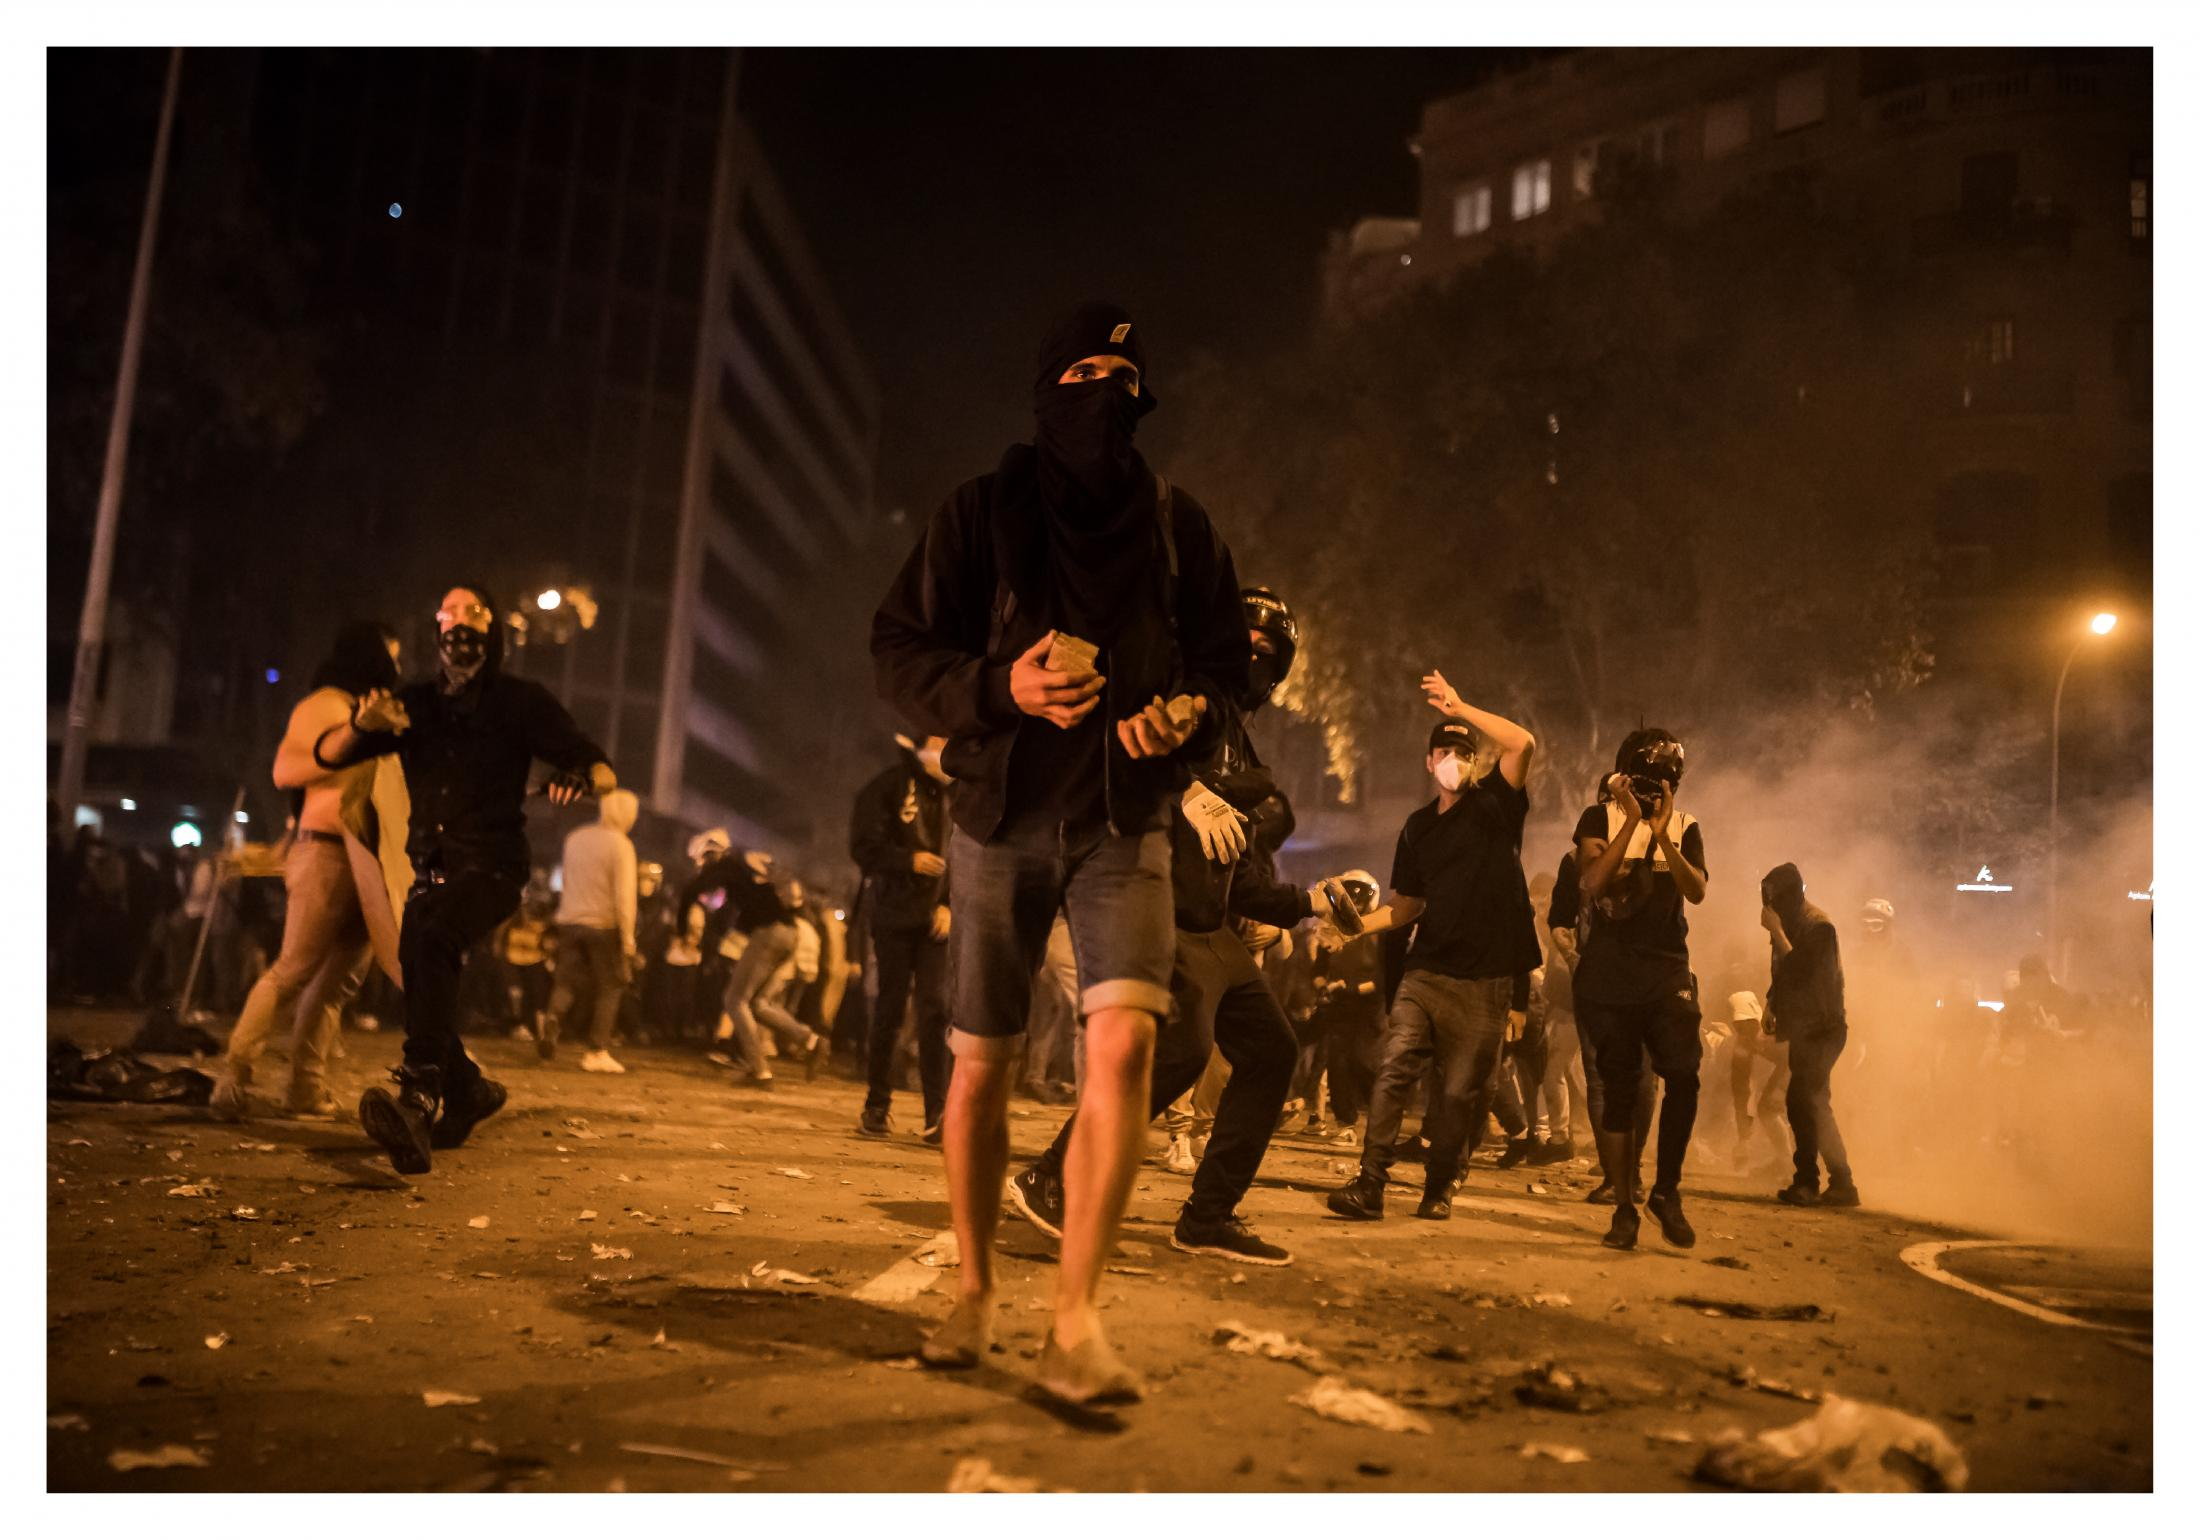 """The protesters come forward with stones in their hands chanted slogans such as """"Out with the forces of occupation"""" """"October 1st, neither forget nor forgive"""", """"You fascists are the terrorists"""" and """"Antifascist Catalonia"""". S imultaneous fires in the center of Barcelona during the altercations. October 2019, Barcelona, Spain."""